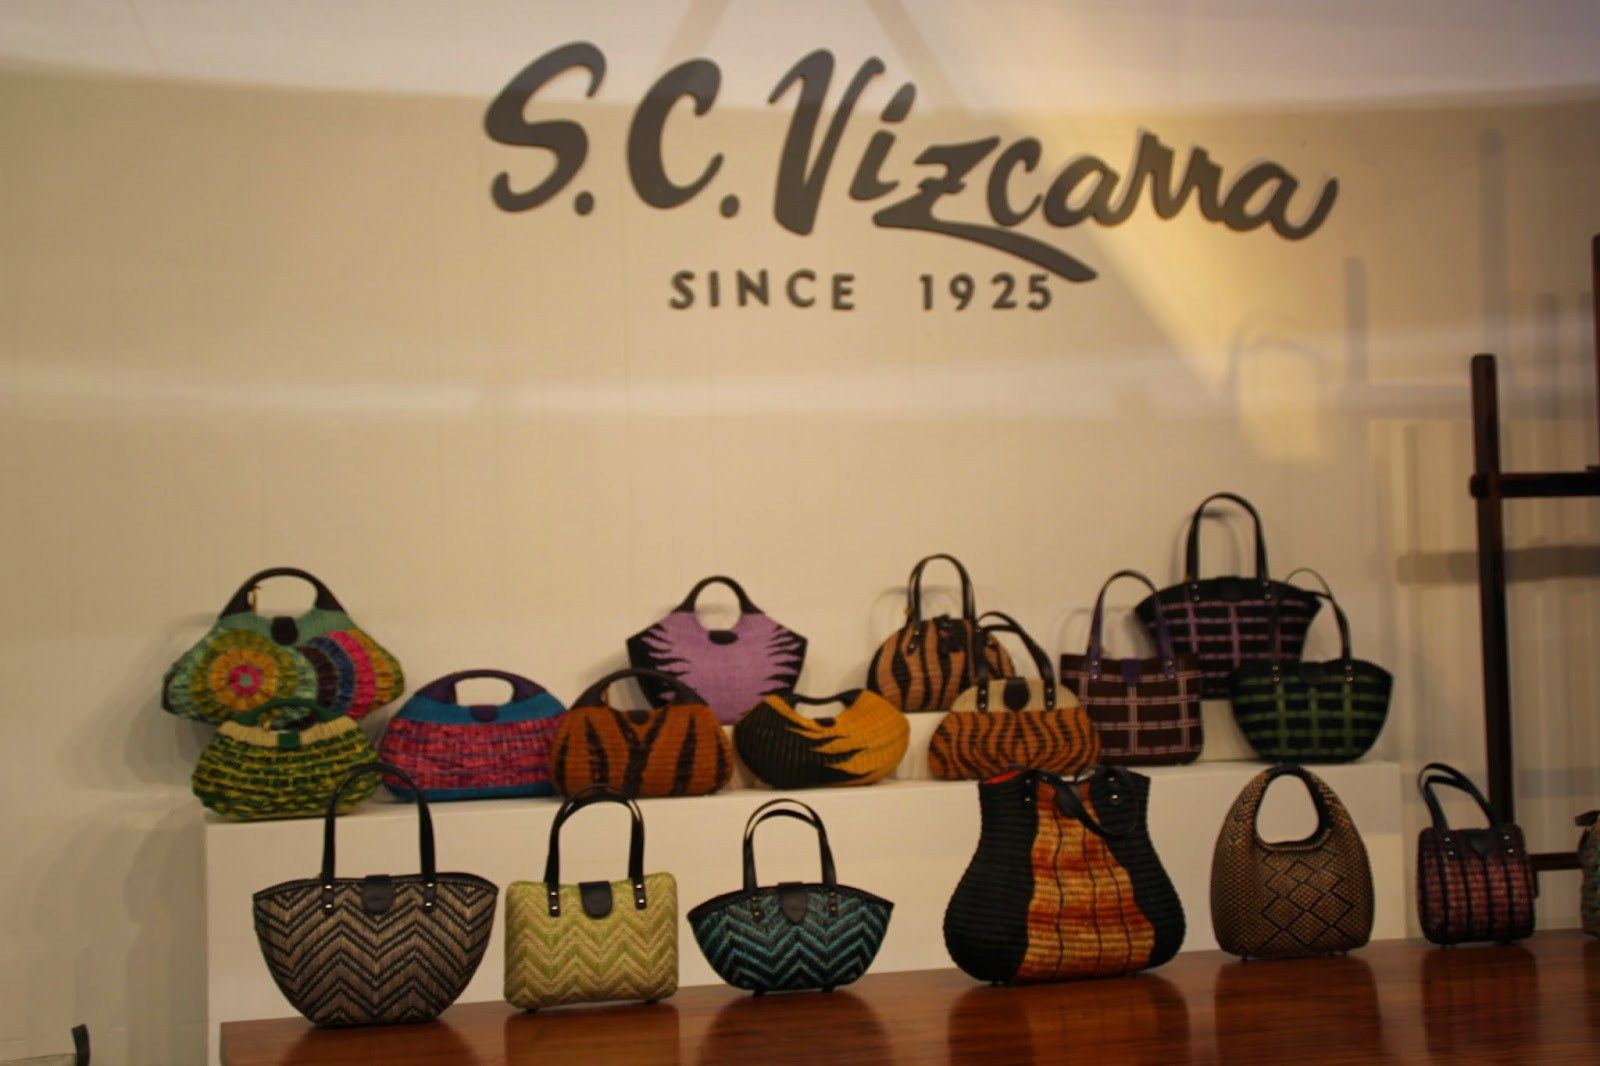 The clever and soulful story: S.C. Vizcarra   Handpicked by Ron & Chris